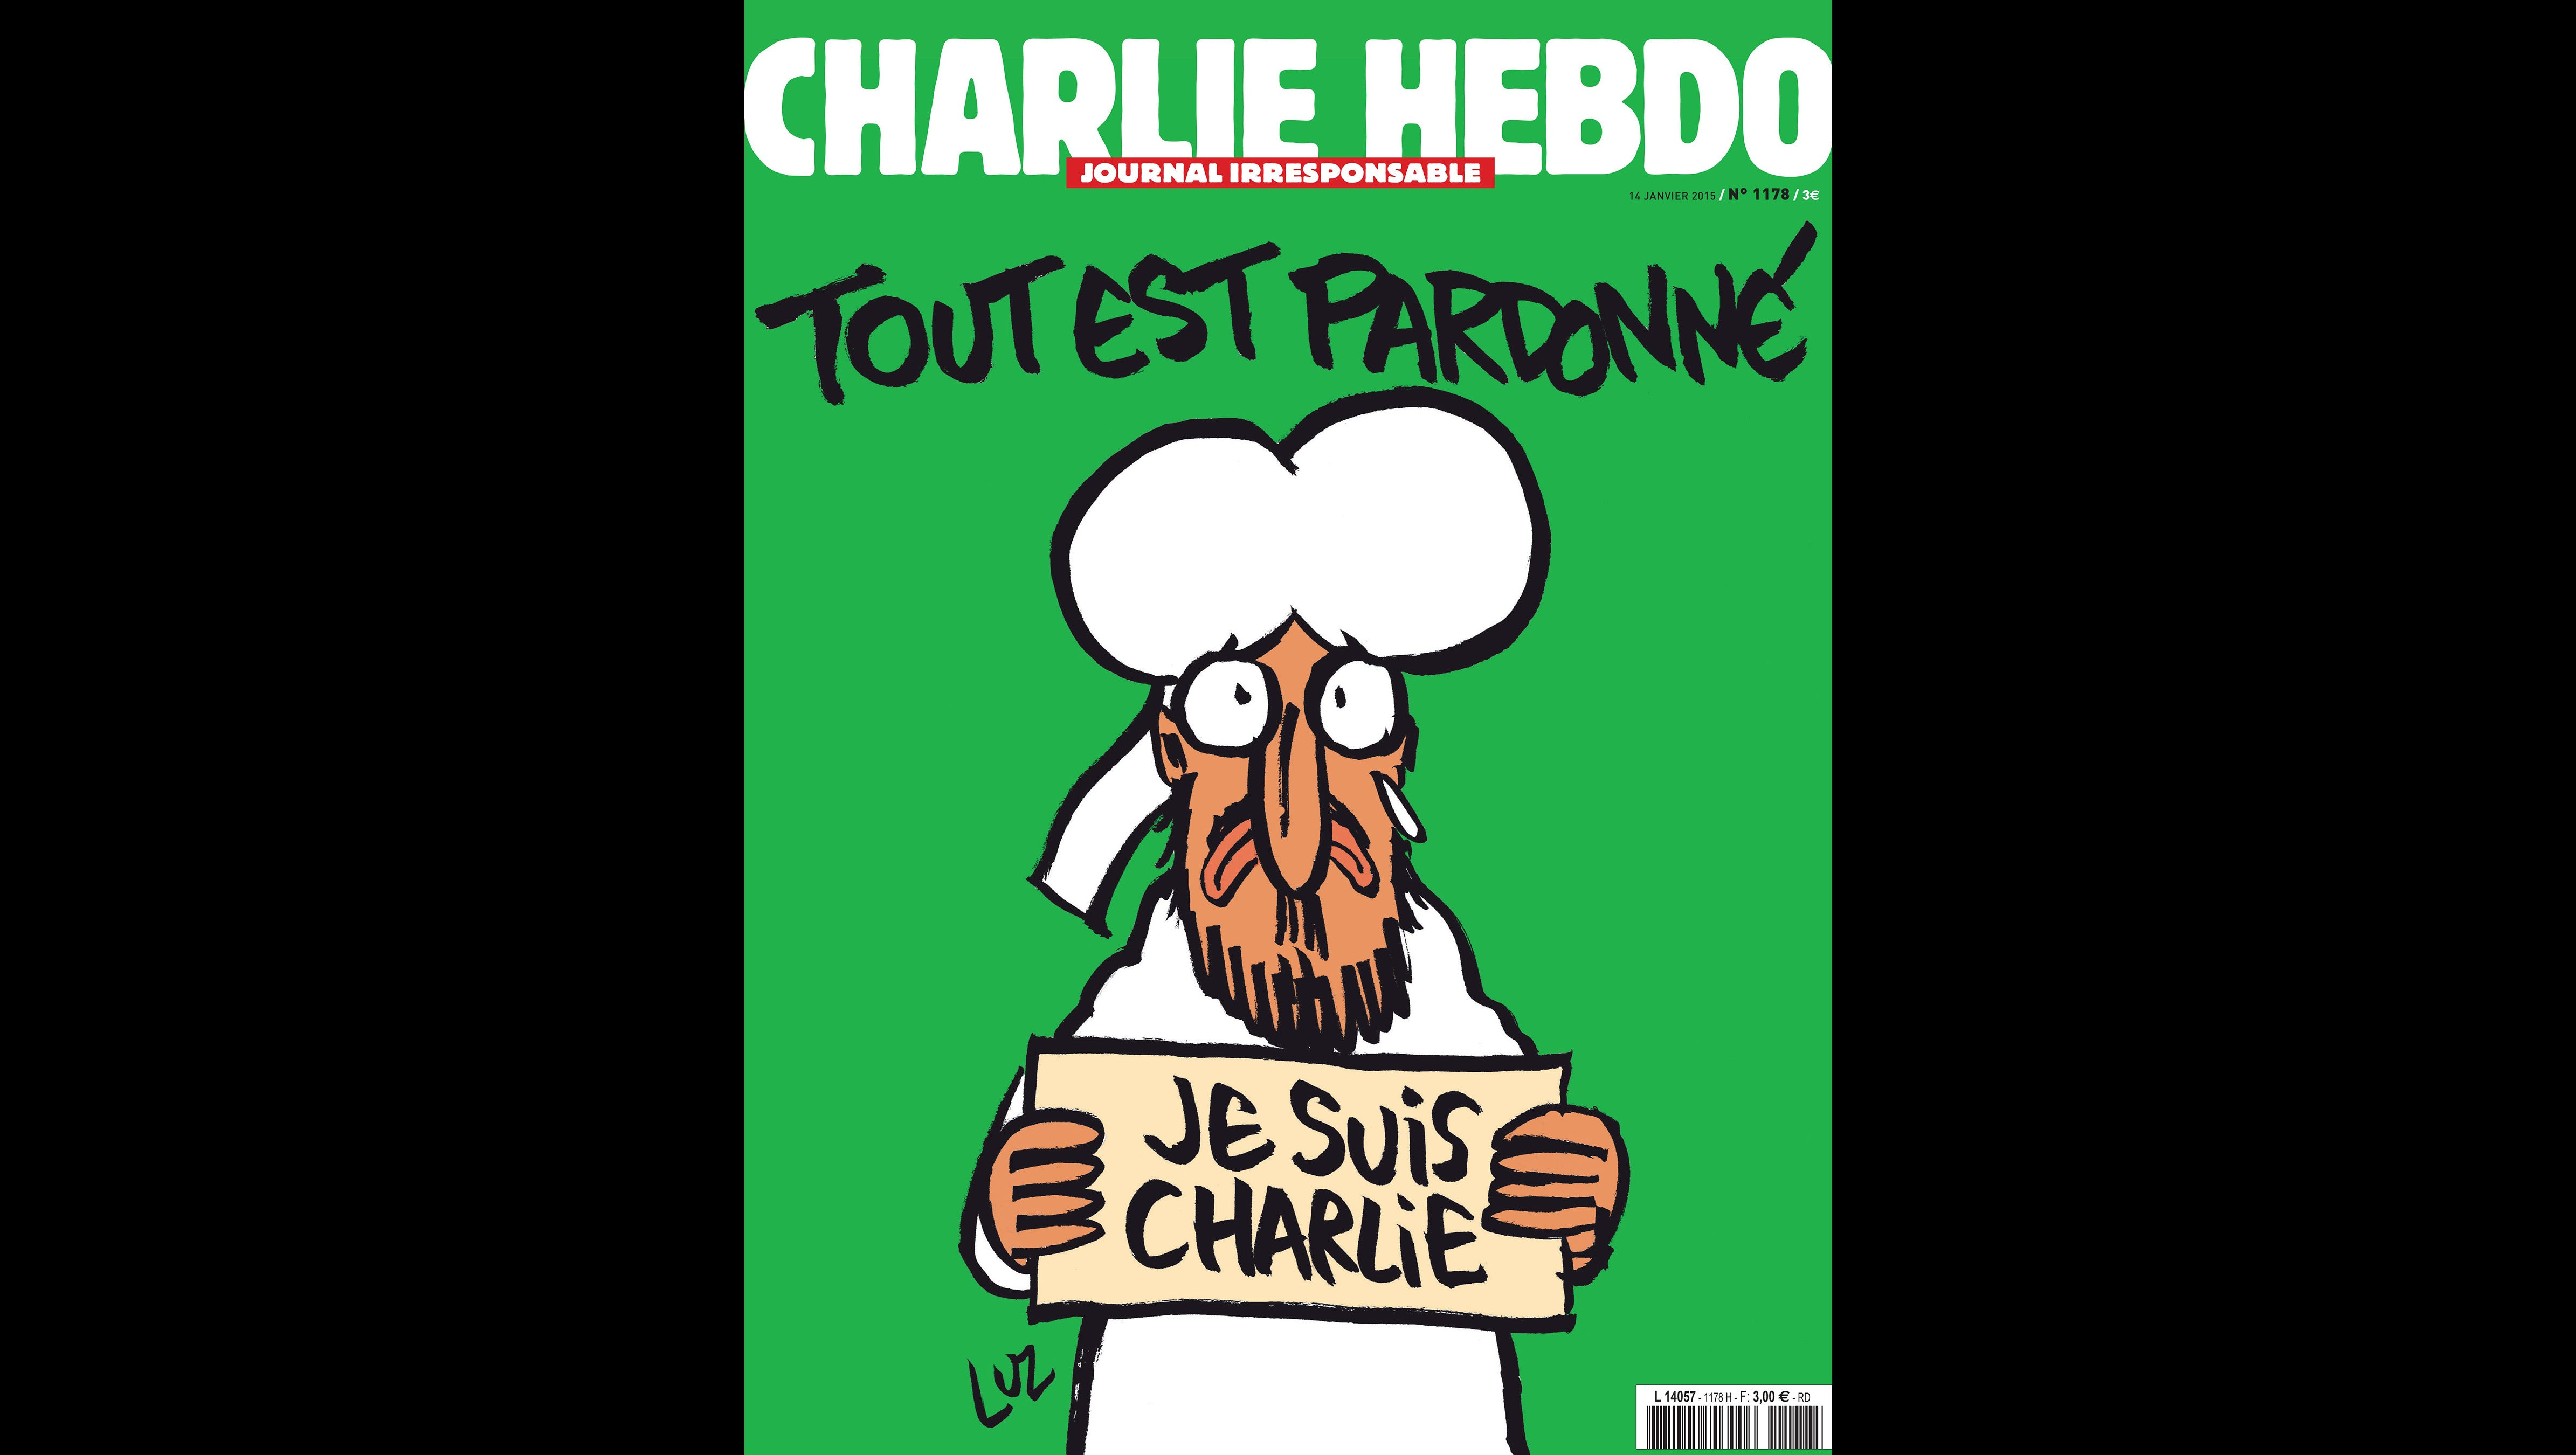 To Believe Je Suis Charlie We Need To See Charlie